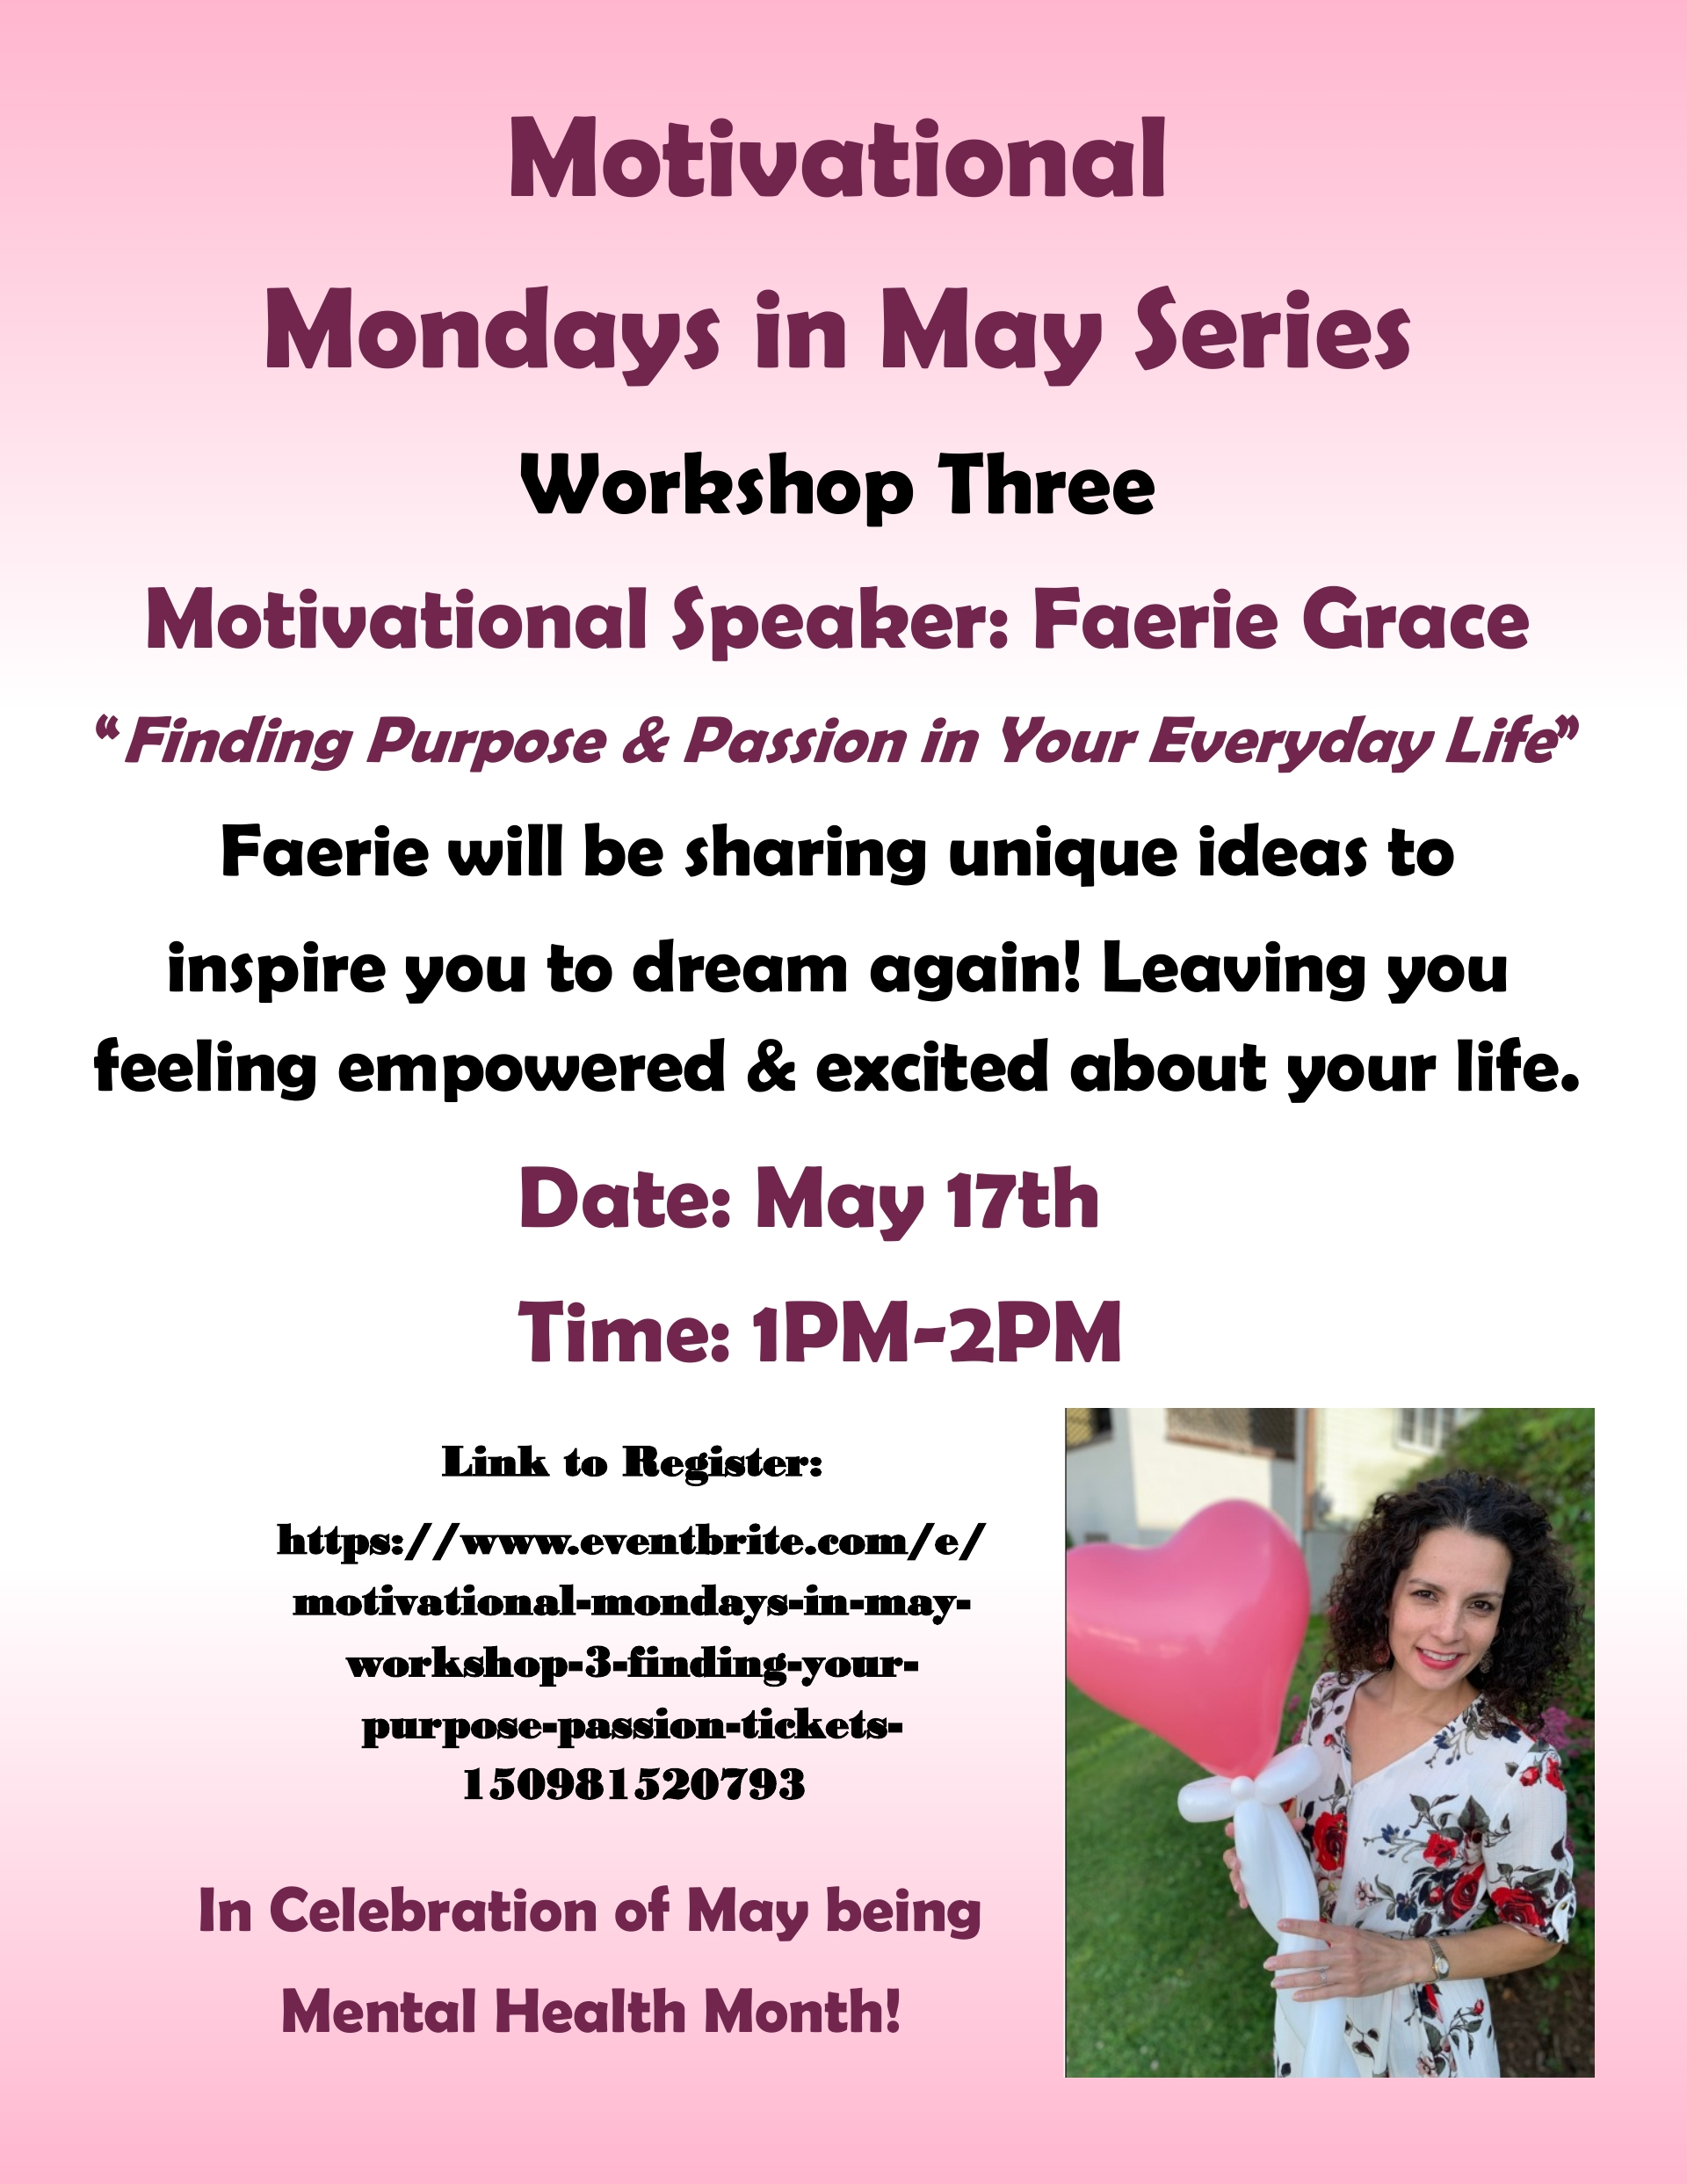 """Finding Purpose & Passion in Your Everyday Life"" Mondays in May Series Workshop Three May 17, 2021"